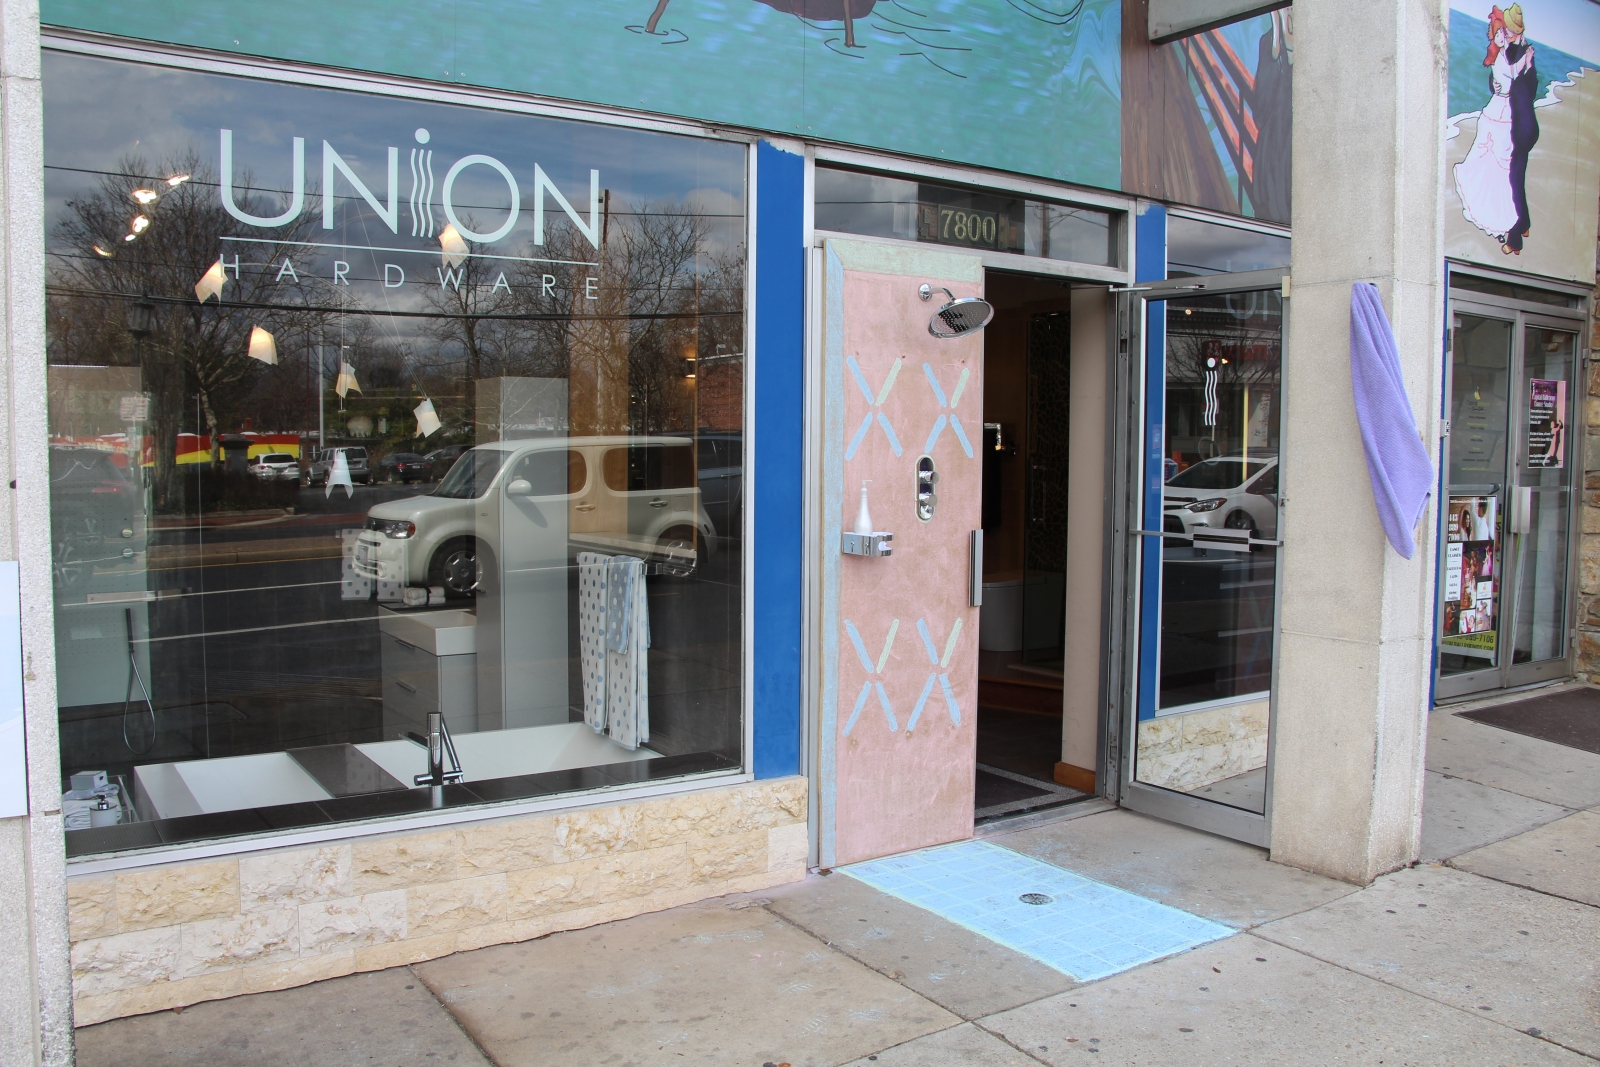 Union Hardware Sets Up Whimsical Outdoor Shower Display To Replace